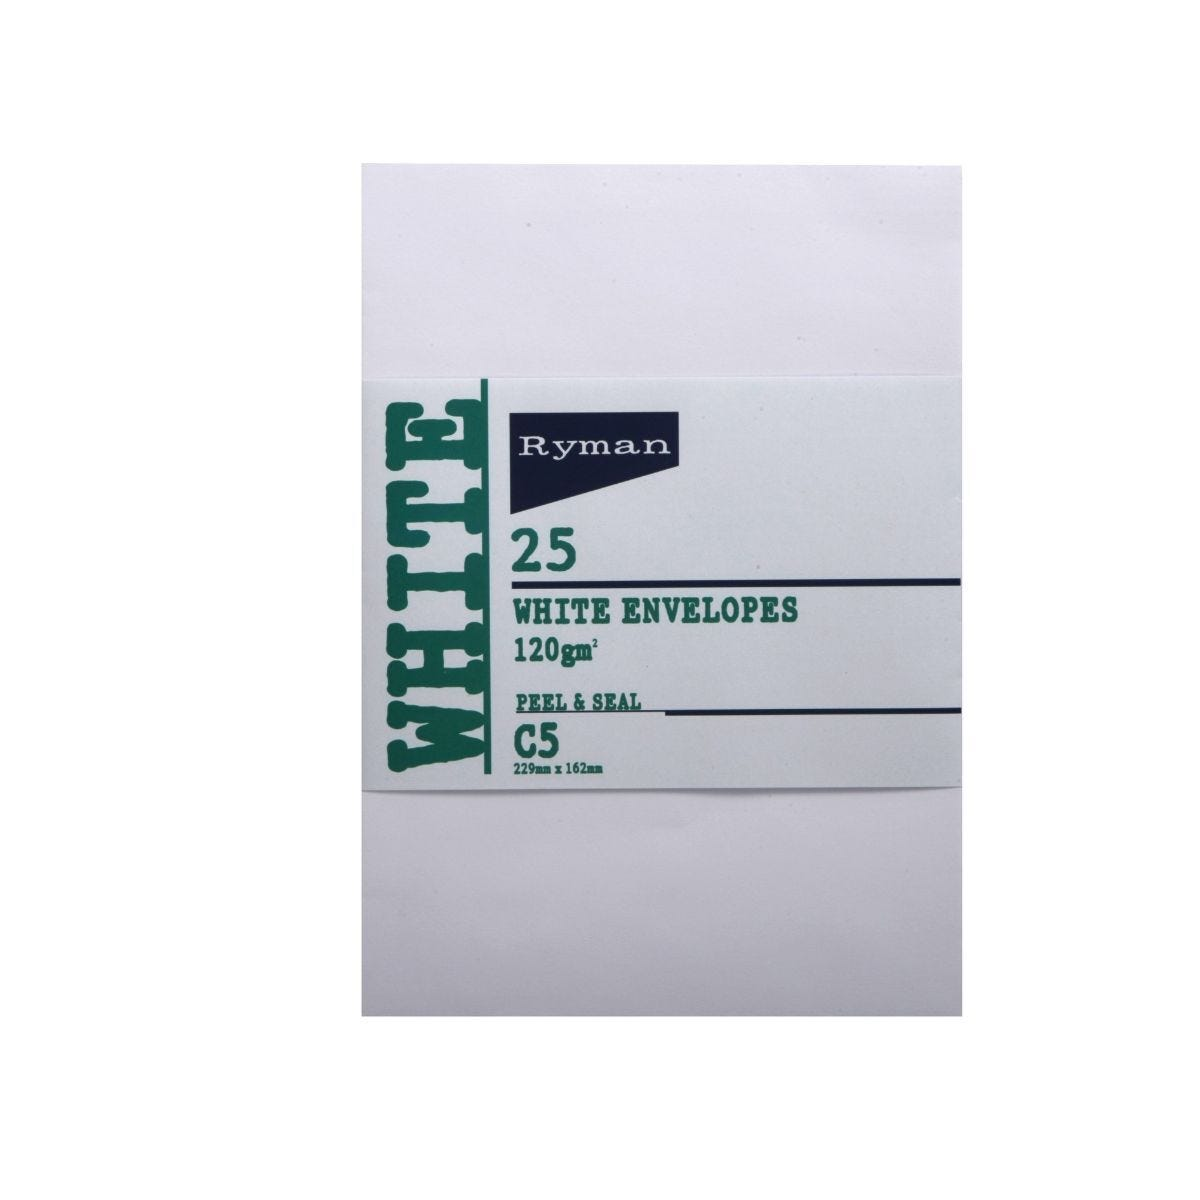 Ryman Card Envelopes C5 120gsm Peal and Seal Pack of 25 White